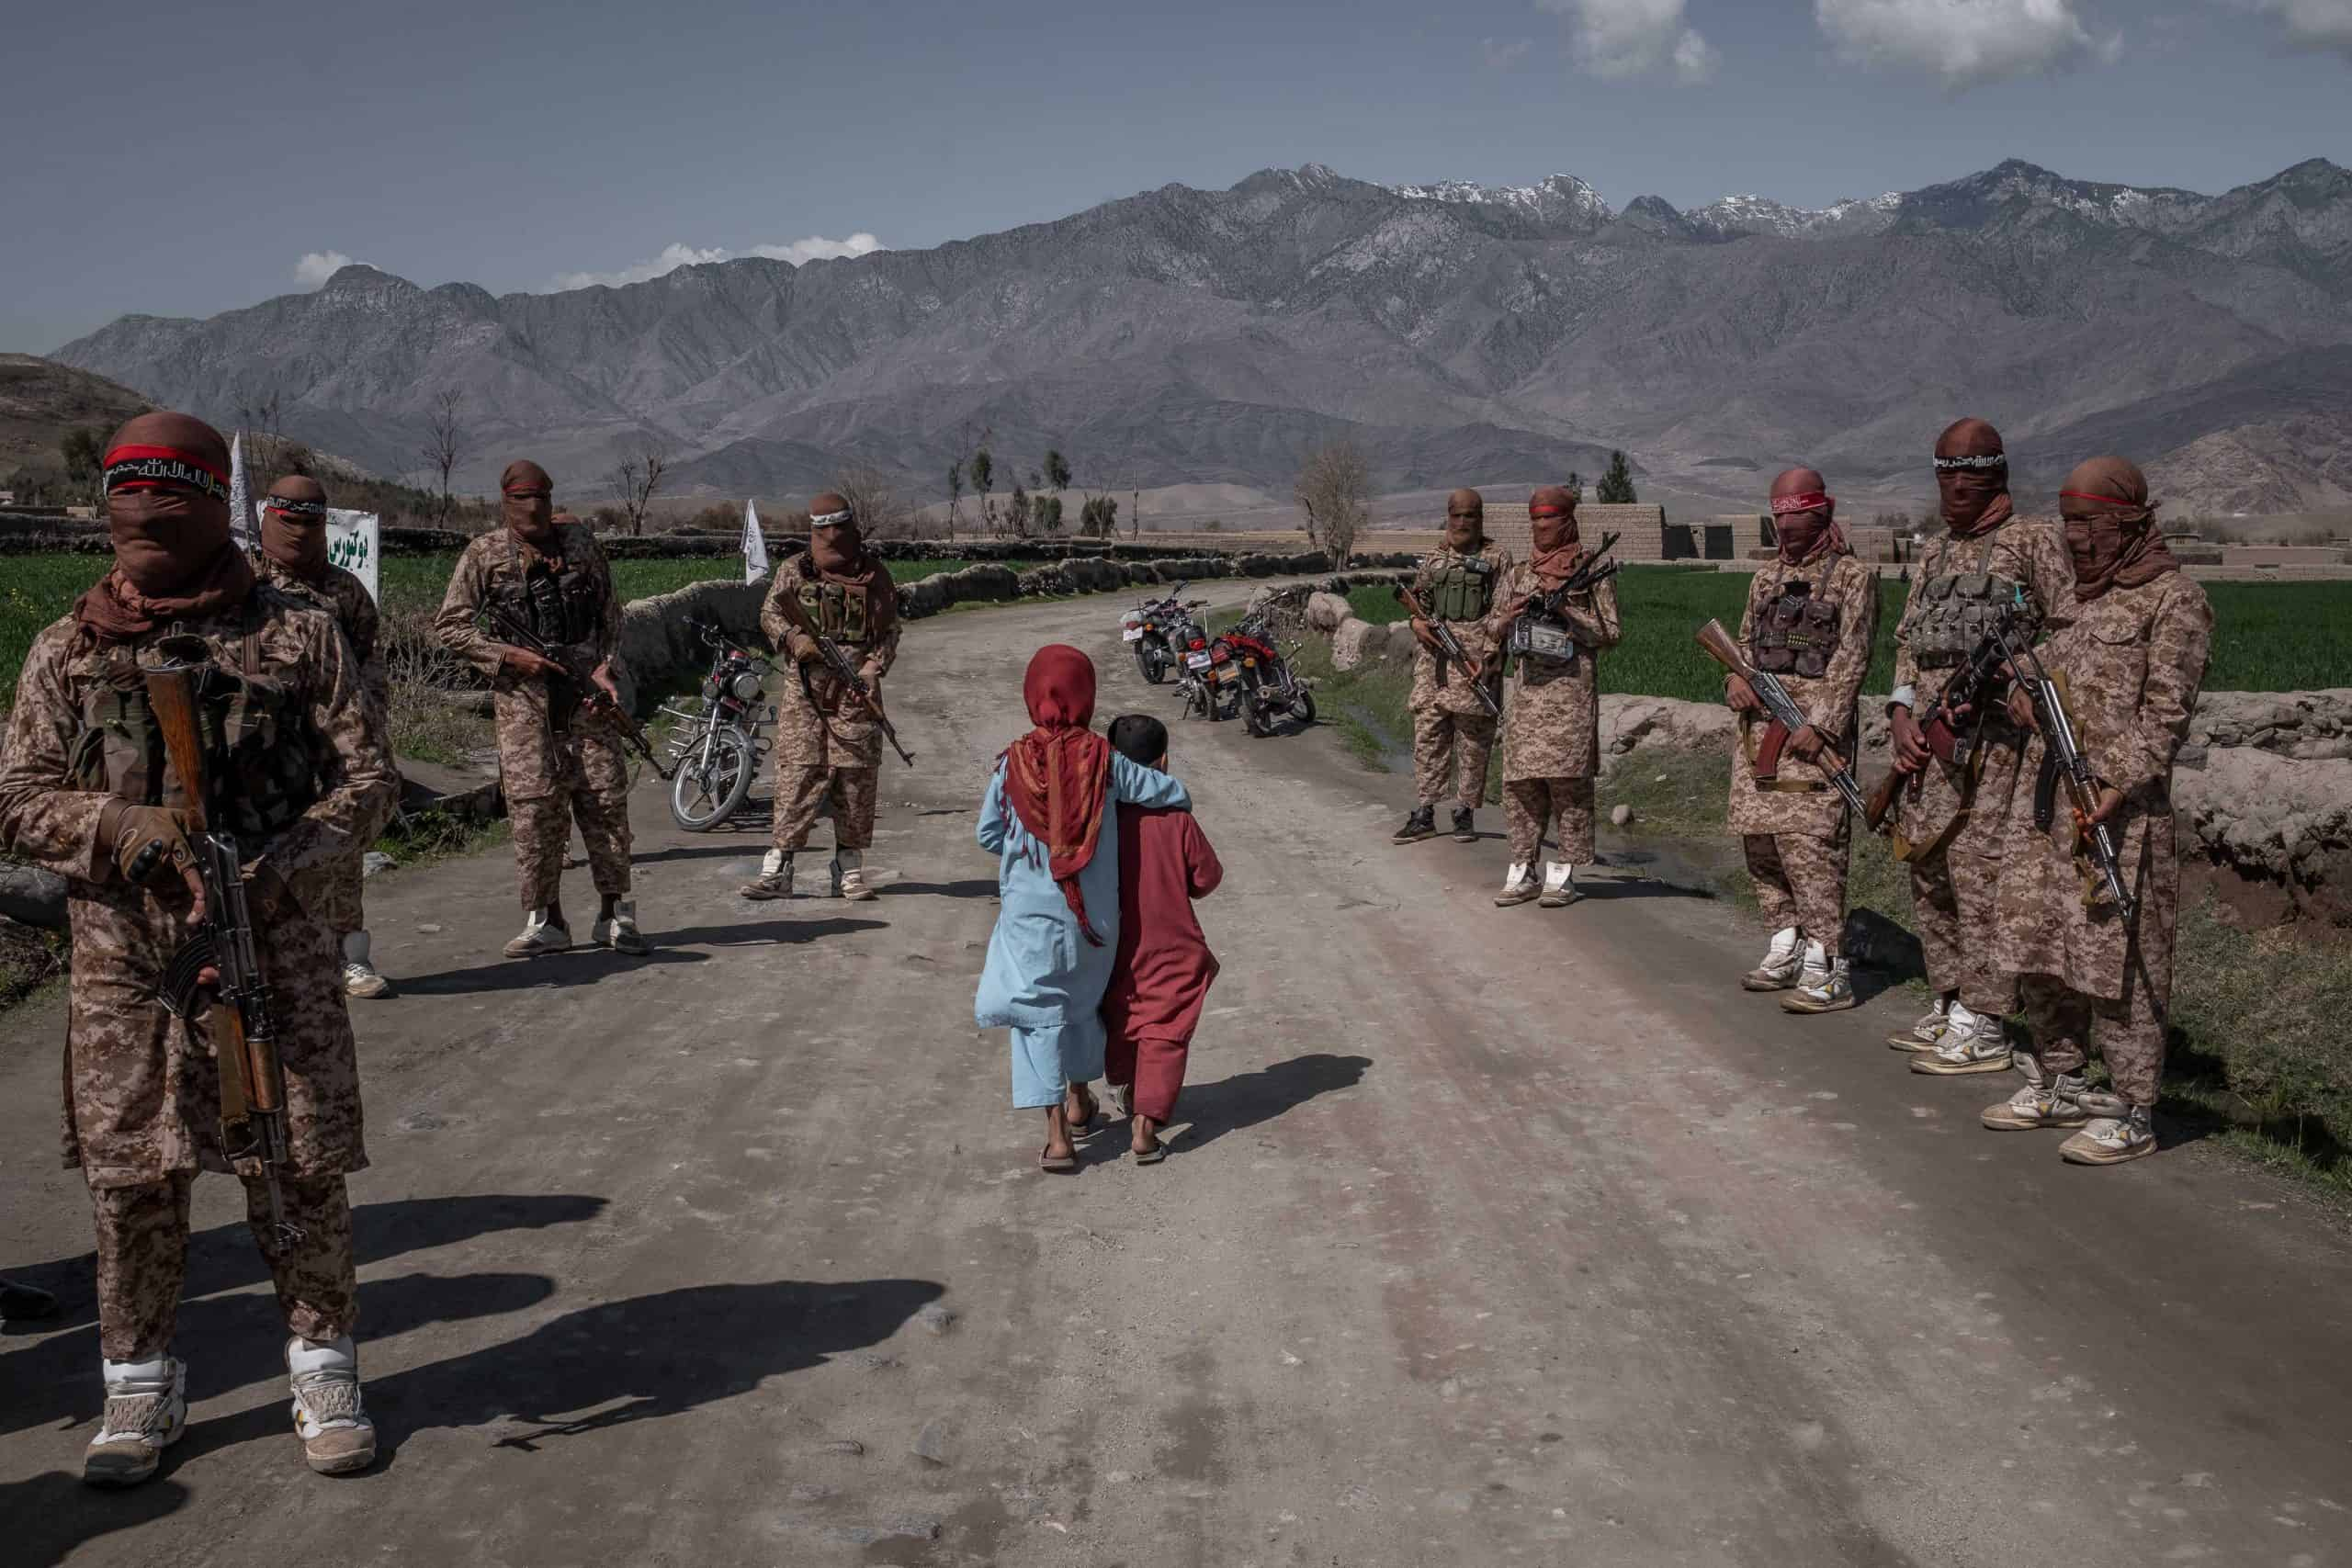 Peace seems impossible on Afghanistan's front lines. 4